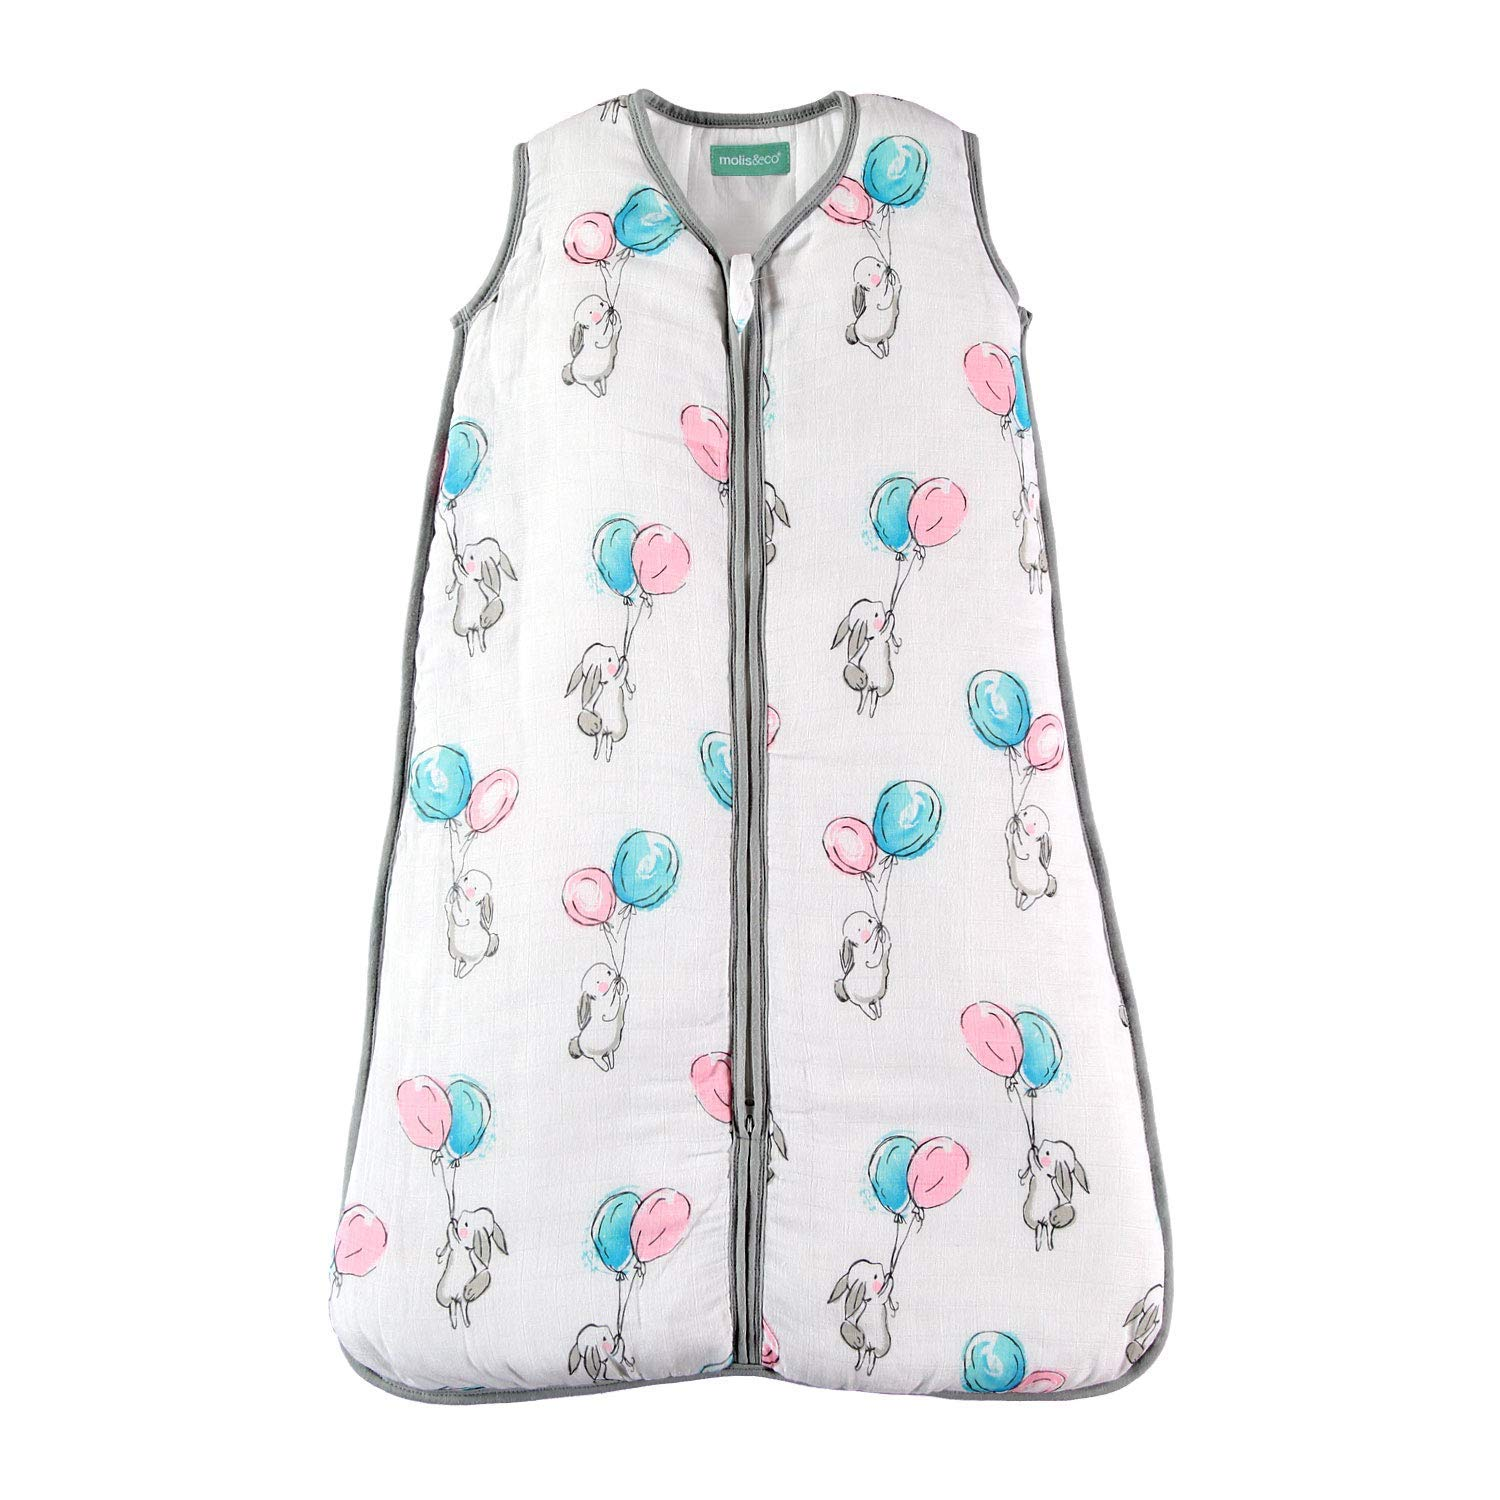 """molis&co Premium Muslin Baby Sleeping Bag and Sack, 2.5 TOG,Super Soft and Warm Unisex Wearable Blanket, 18-36 Months. 35.8"""", Ideal for Winter. Unisex Bunny and Balloons Print in Blue & Pink."""